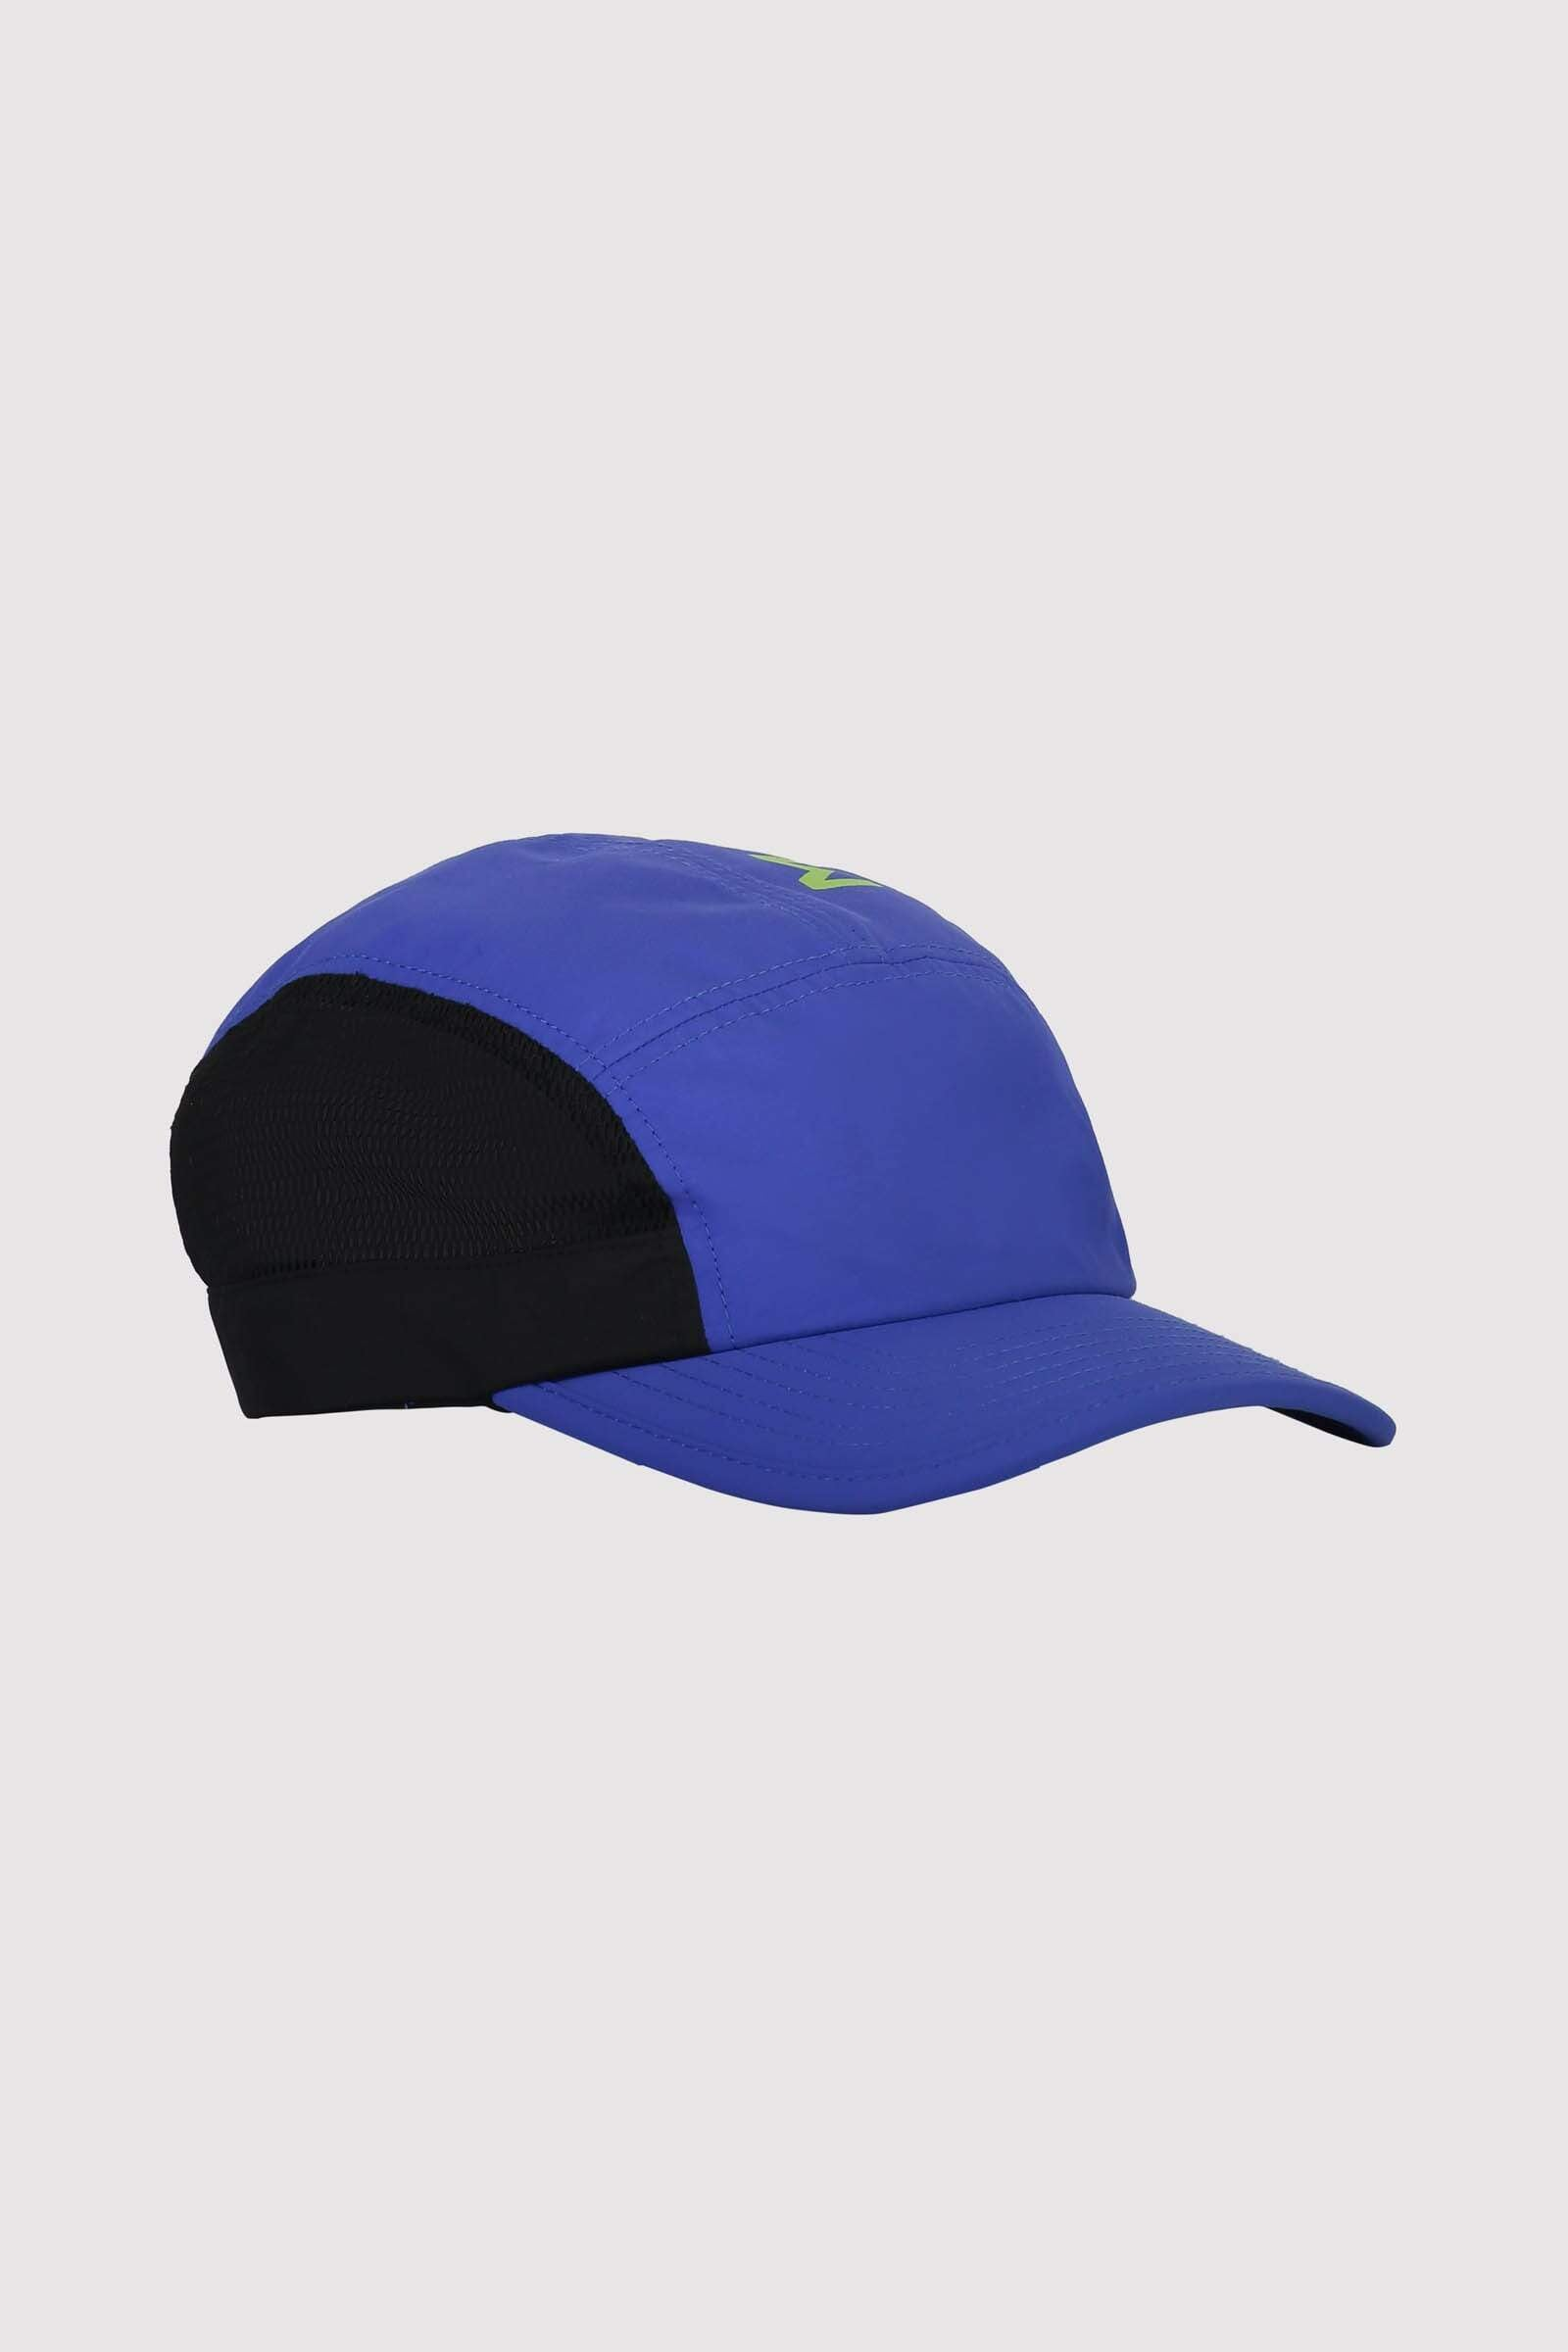 Voss Cap - Ultra Blue / Black